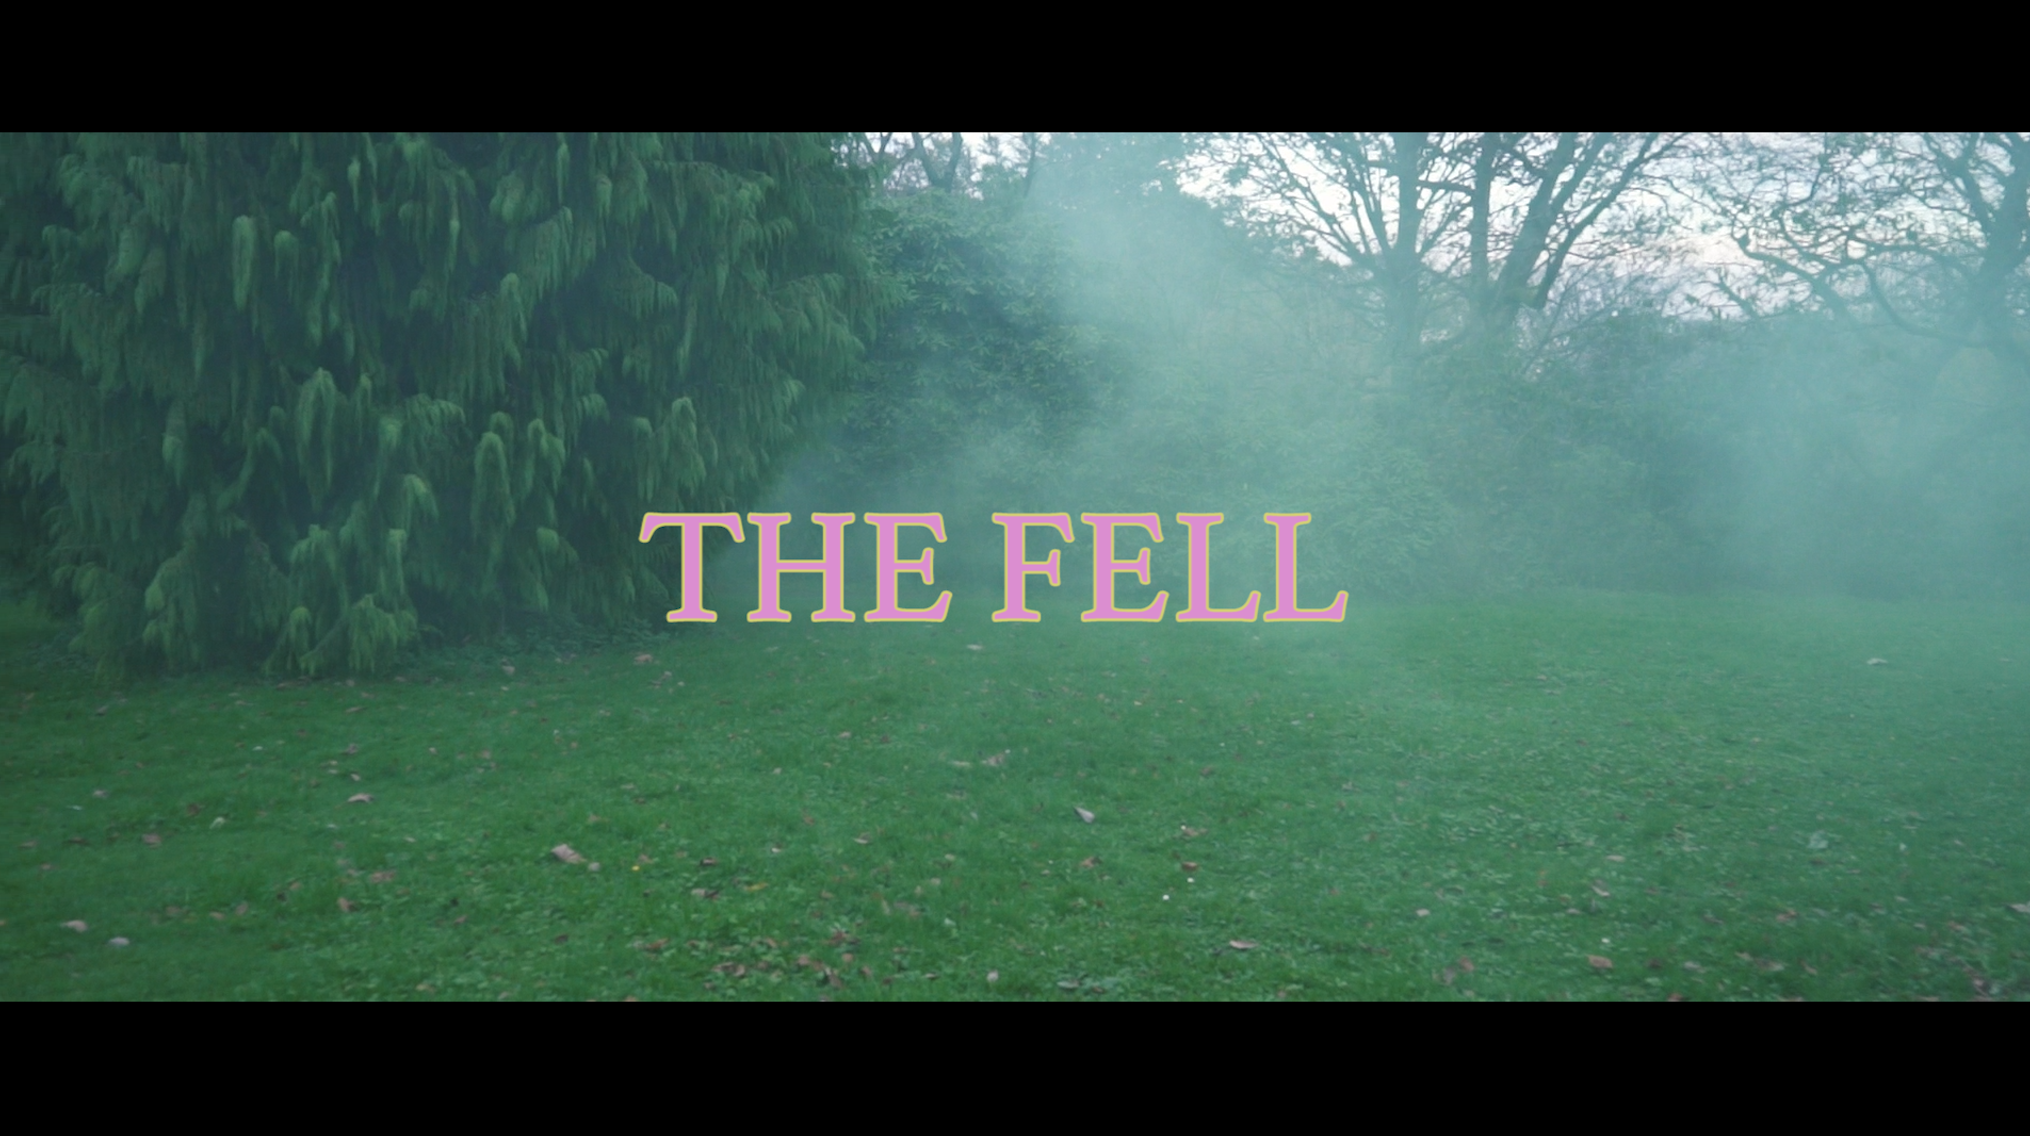 THE FELL | Title Design